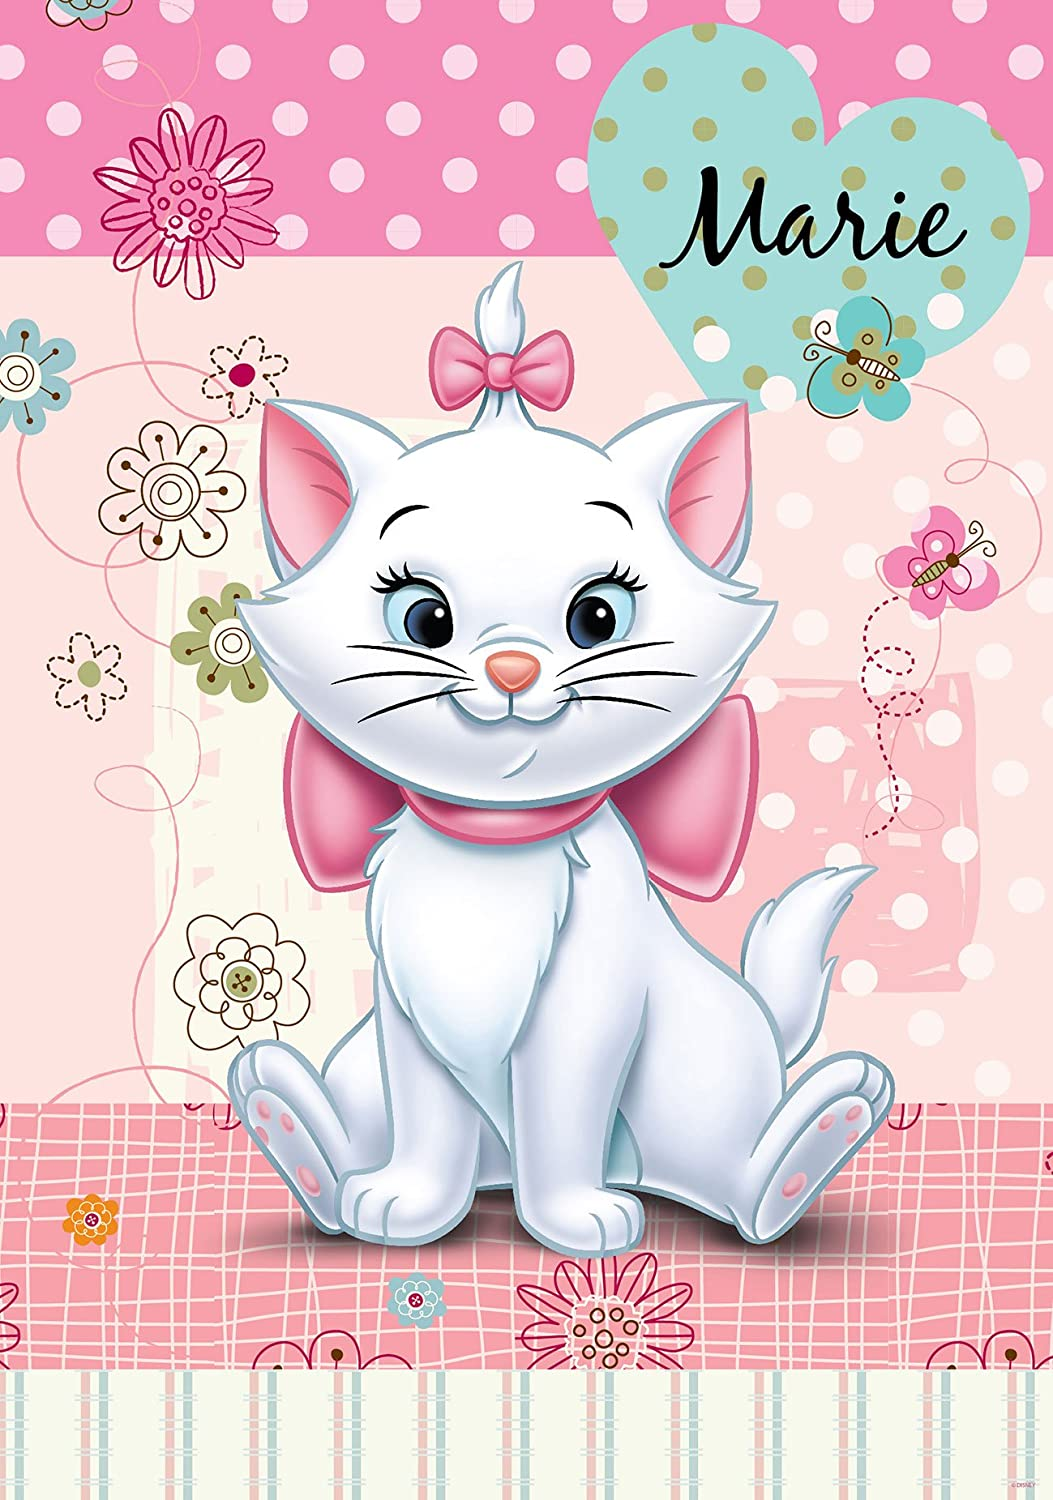 Amazon Co Jp Disney Aristocats Marie 4壁紙壁画 X Large 254x184 Cm Wxh 804p4 Diy 工具 ガーデン